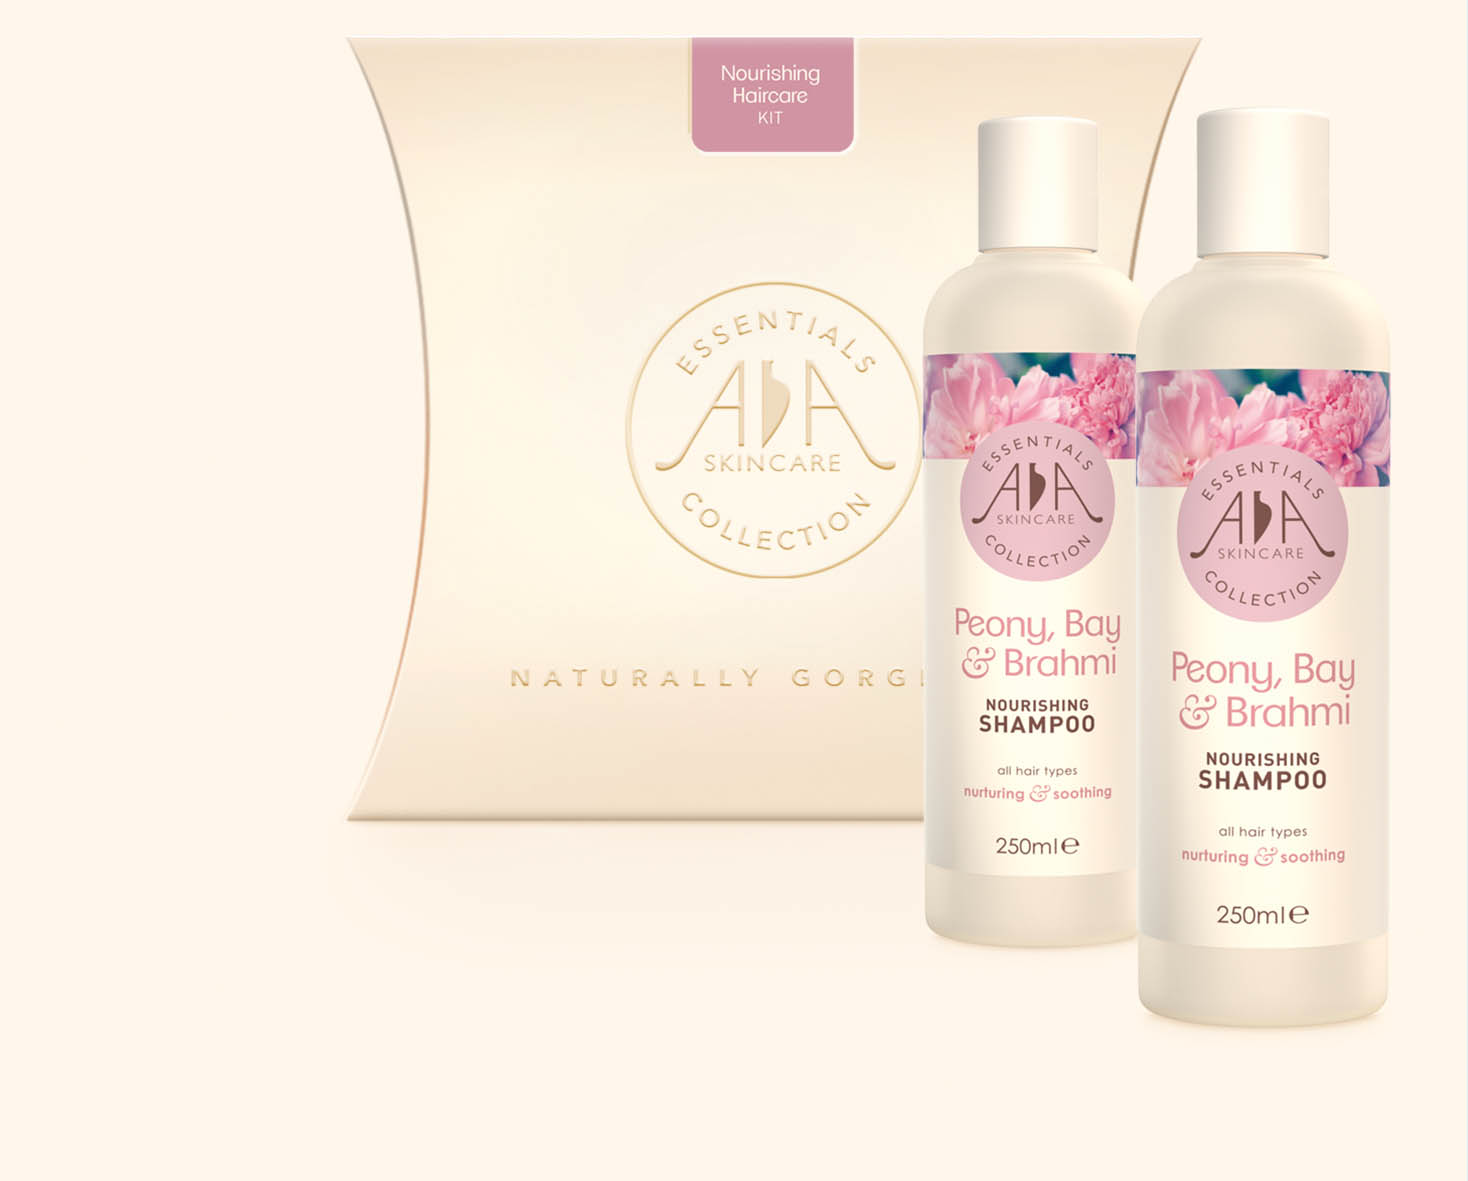 Nourishing Haircare Kit - AA Skincare